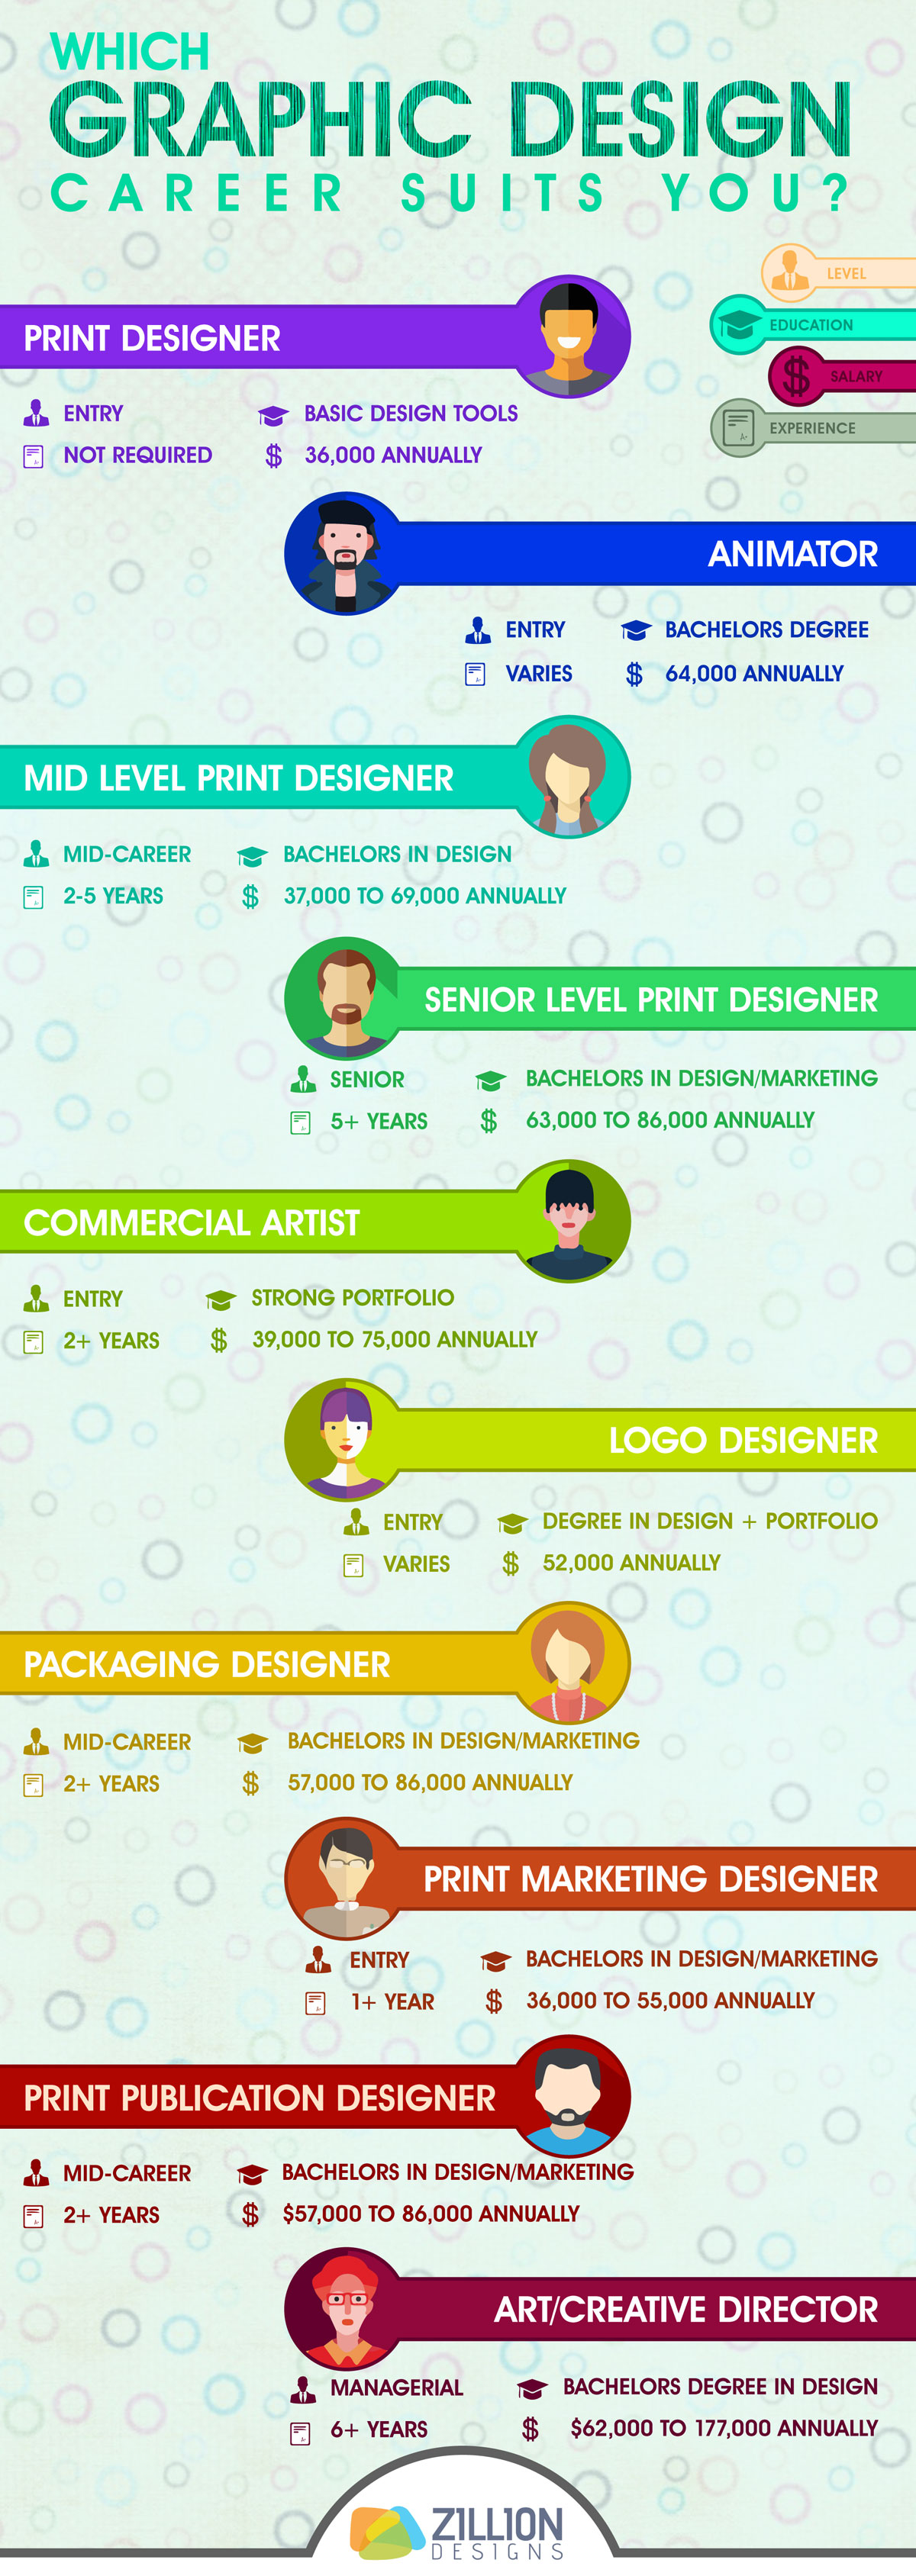 10 Different Types Of Graphic Design Careers